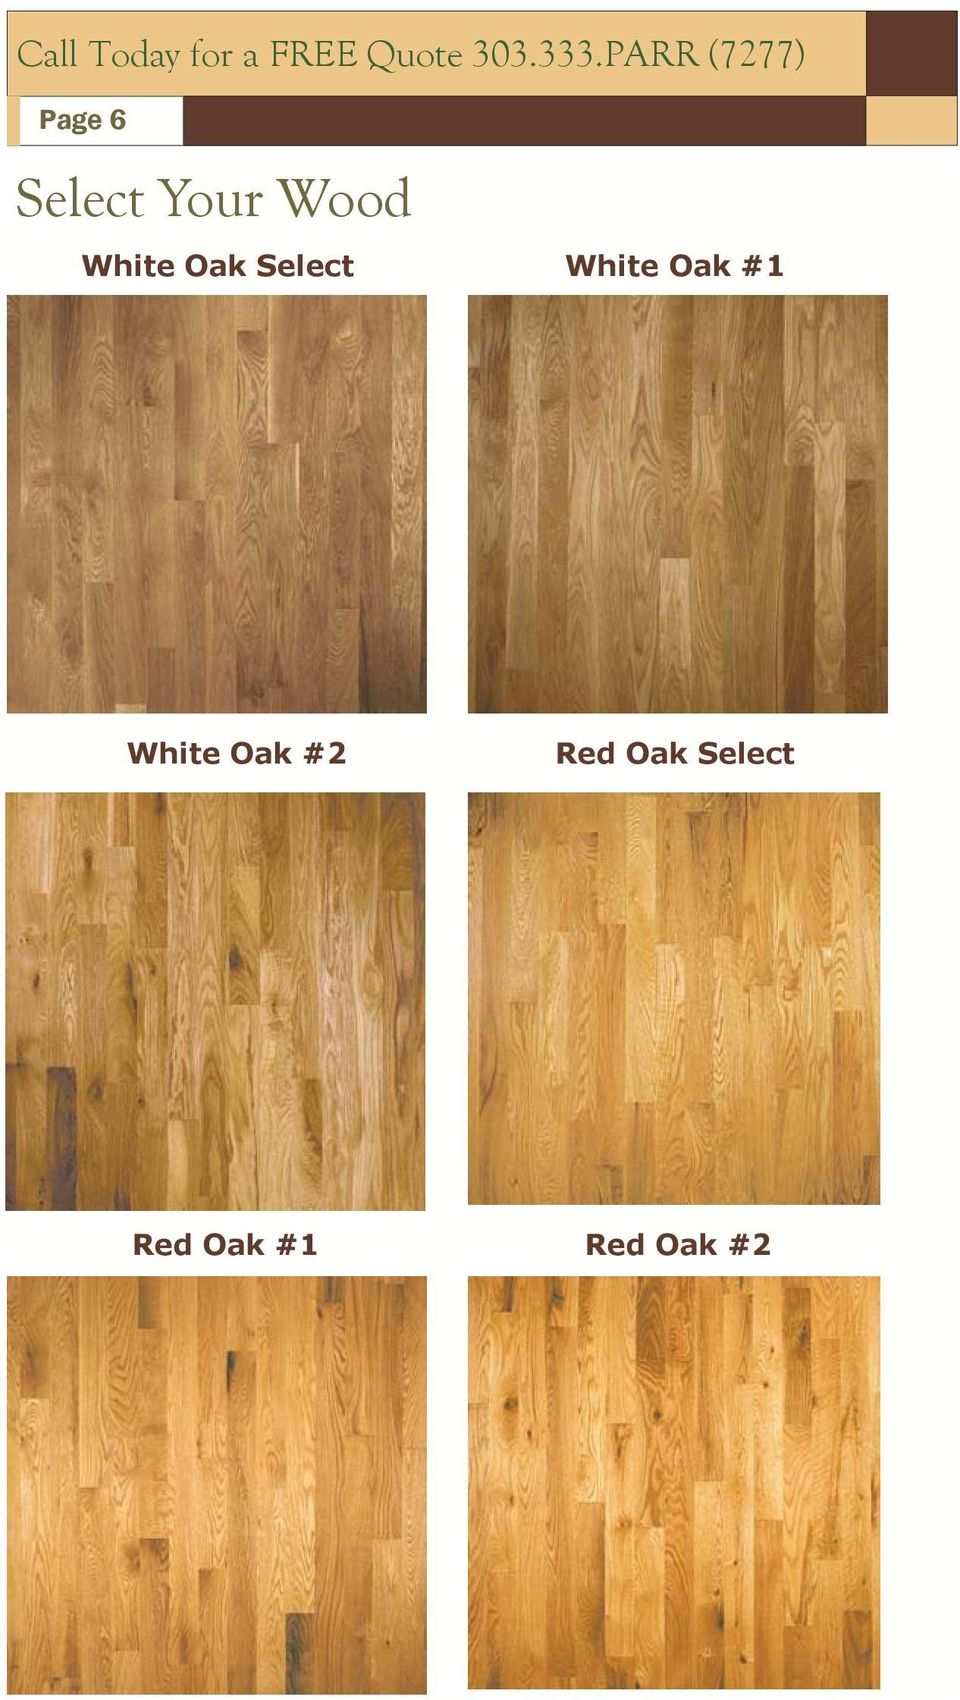 White Oak Select White Oak #1 White